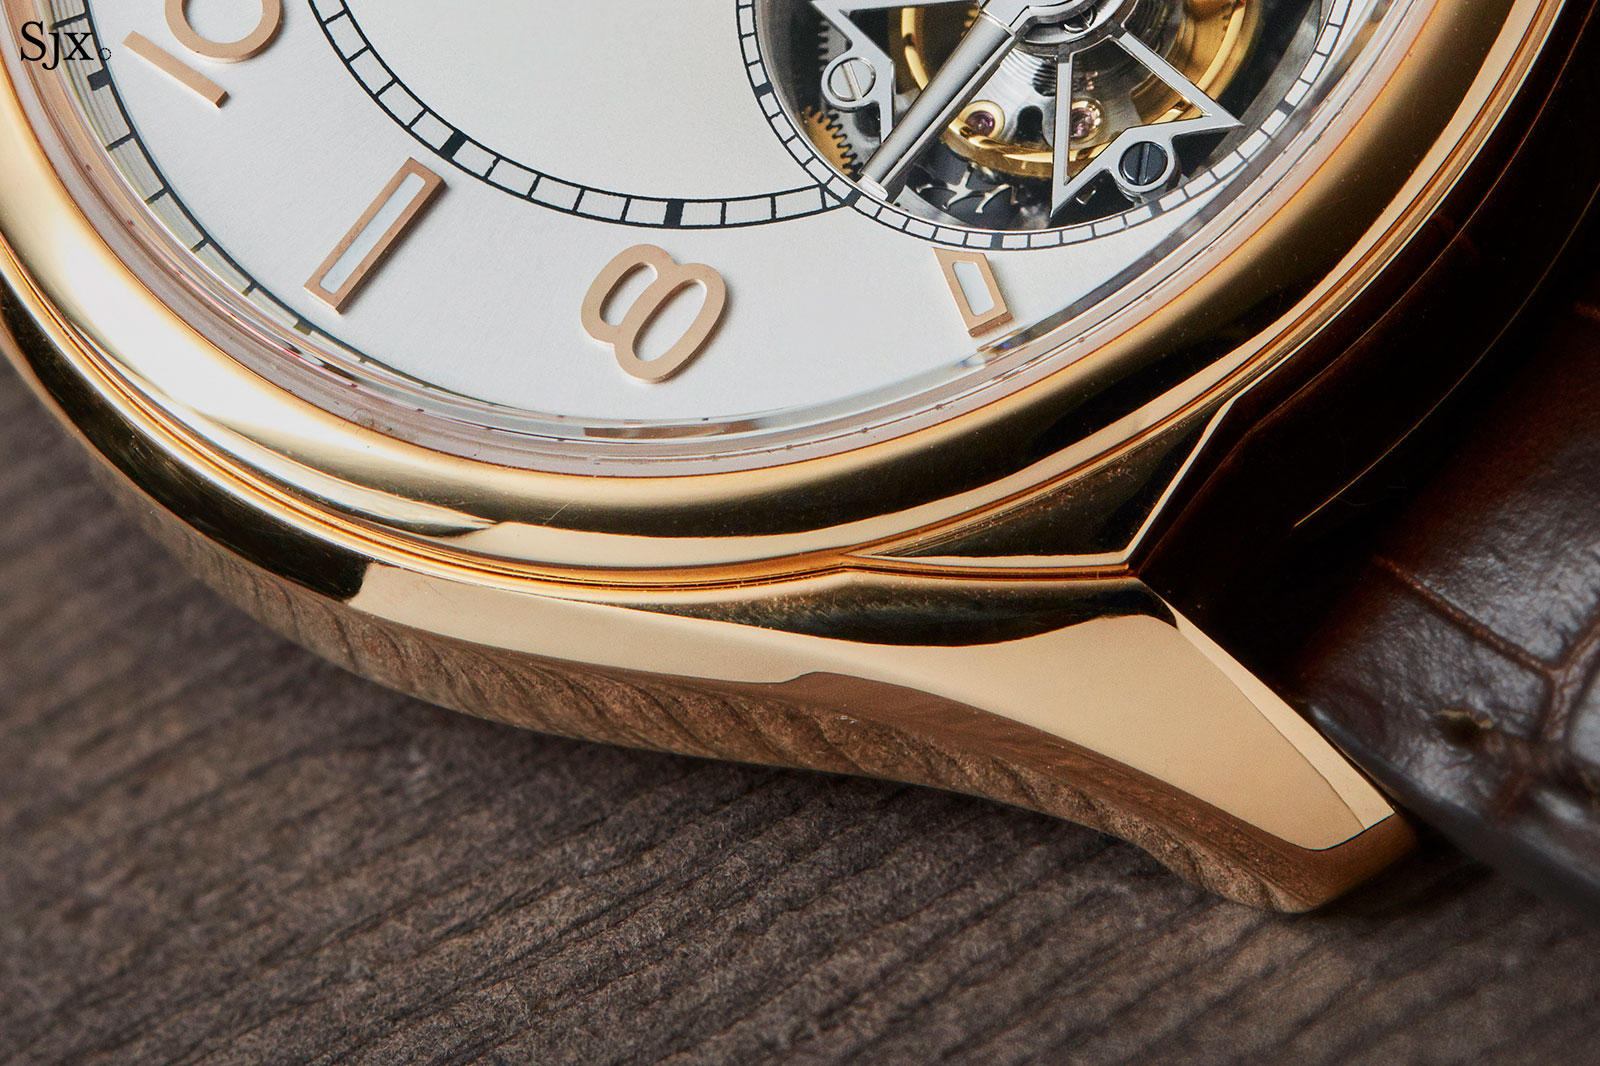 Vacheron Constantin FiftySix Tourbillon 6